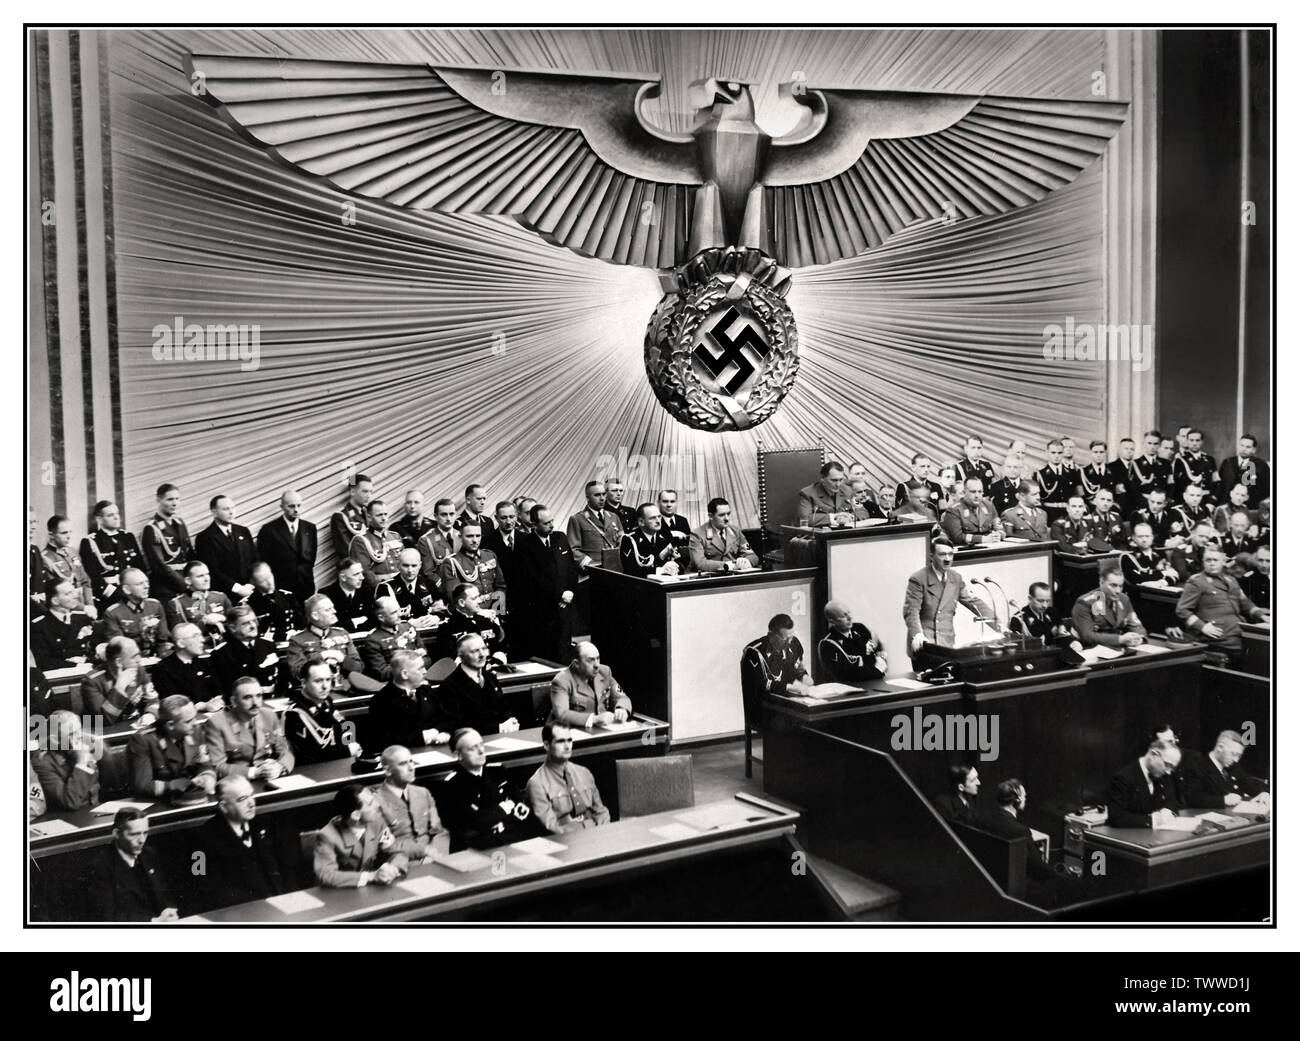 Adolf Hitler PODIUM REICHSTAG SPEECH Vintage pre-war 1930's German Nazi Propaganda Image of German Chancellor Adolf Hitler (standing at lectern) delivering a speech at the Reichstag on the 'Jewish question,' threatening the annihilation of European Jewry should another war break out, 30 January 1939. Adolf Hitler – Führer and Reich Chancellor of Germany and Leader of the Nazi Party Germany Stock Photo